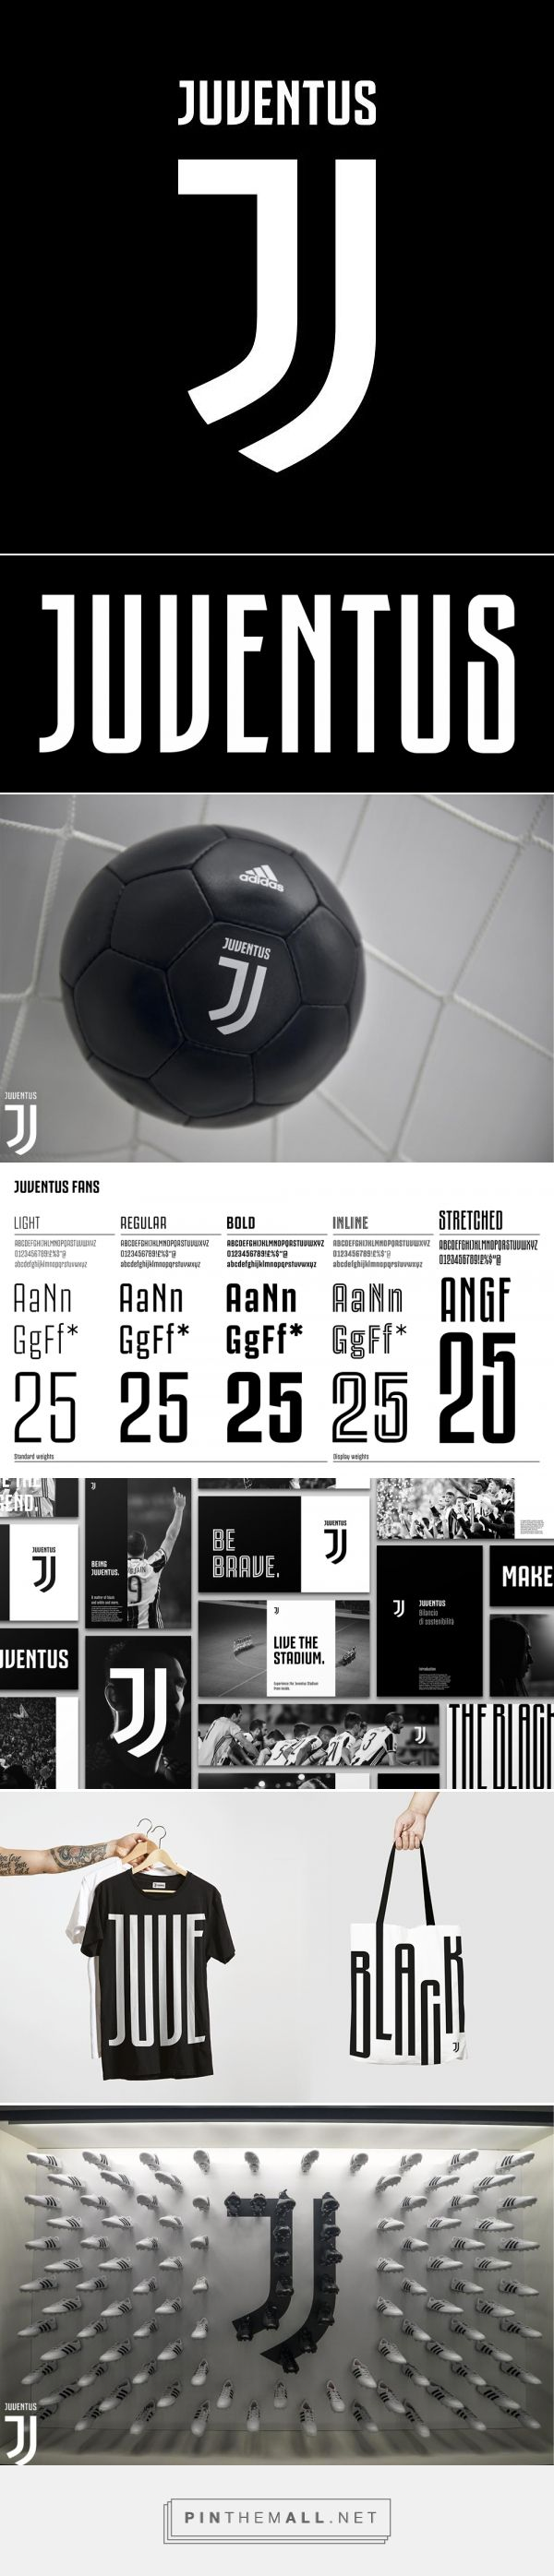 Brand New: New Logo and Identity for Juventus by Interbrand - created via https://pinthemall.net